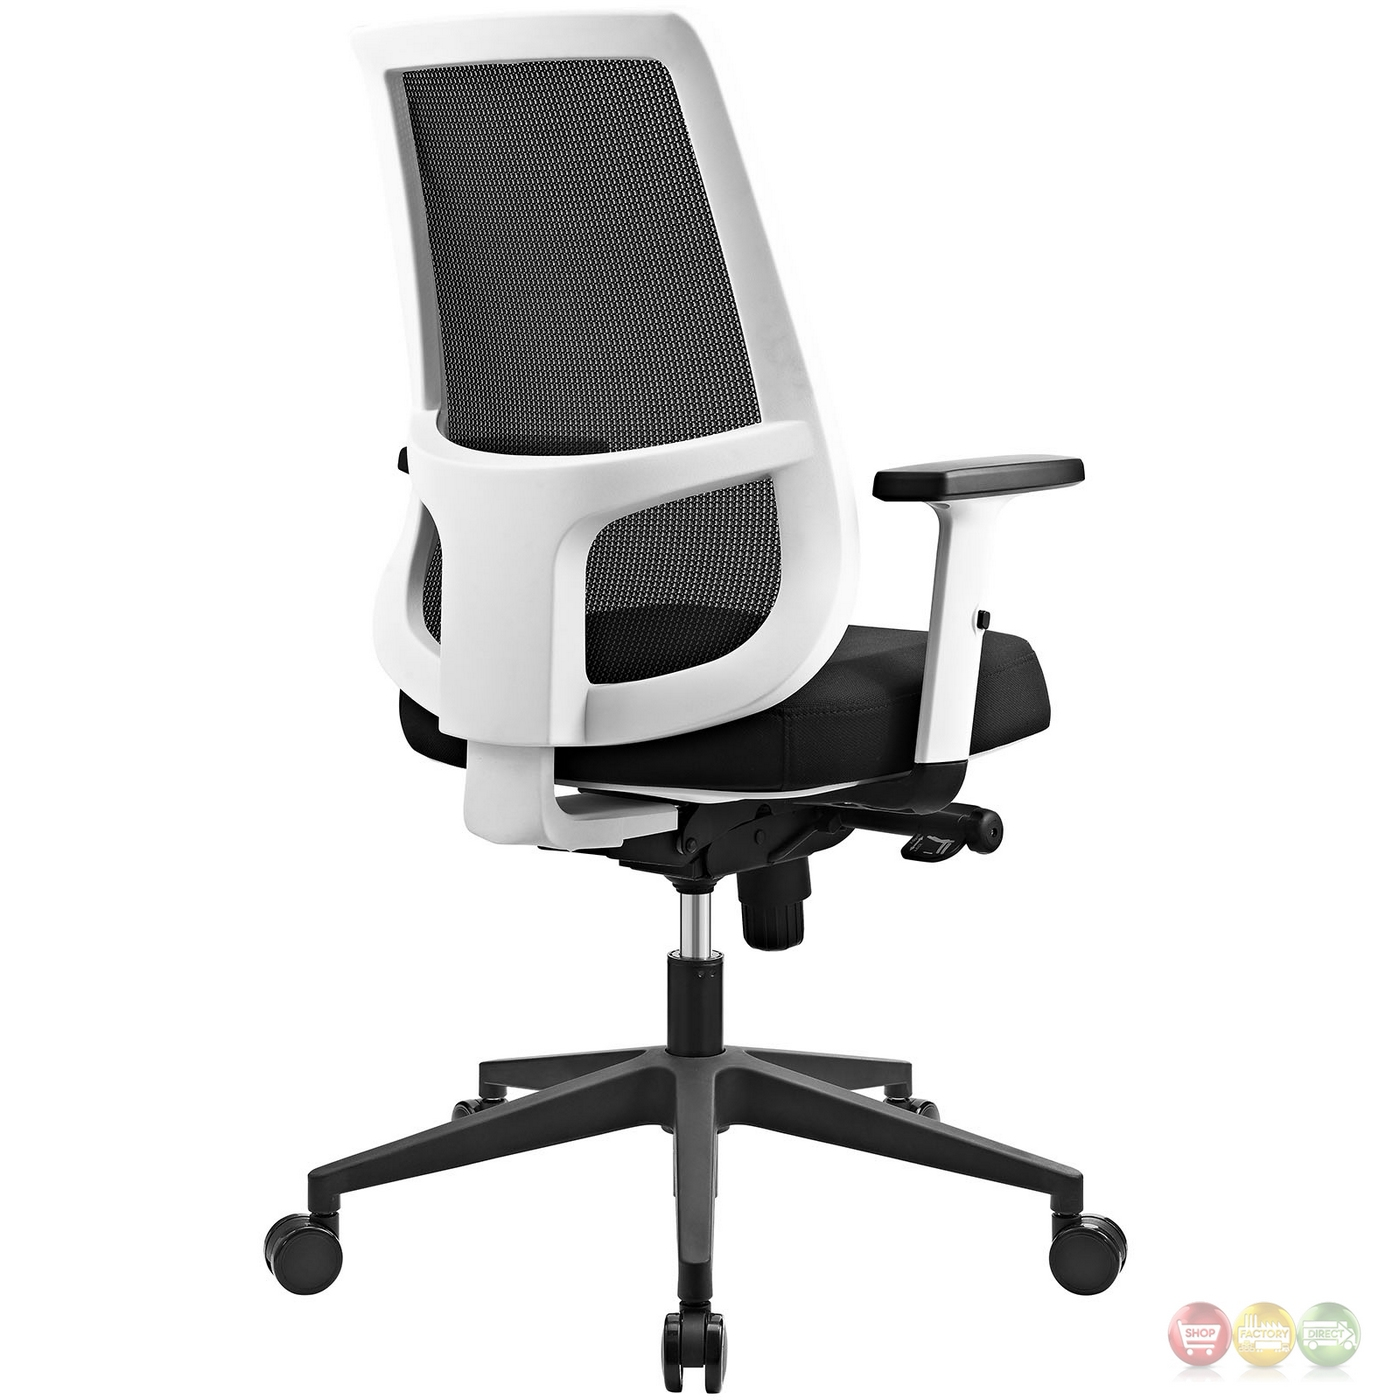 back support office chair velvet dining chairs uk pump ergonomic mesh w white frame